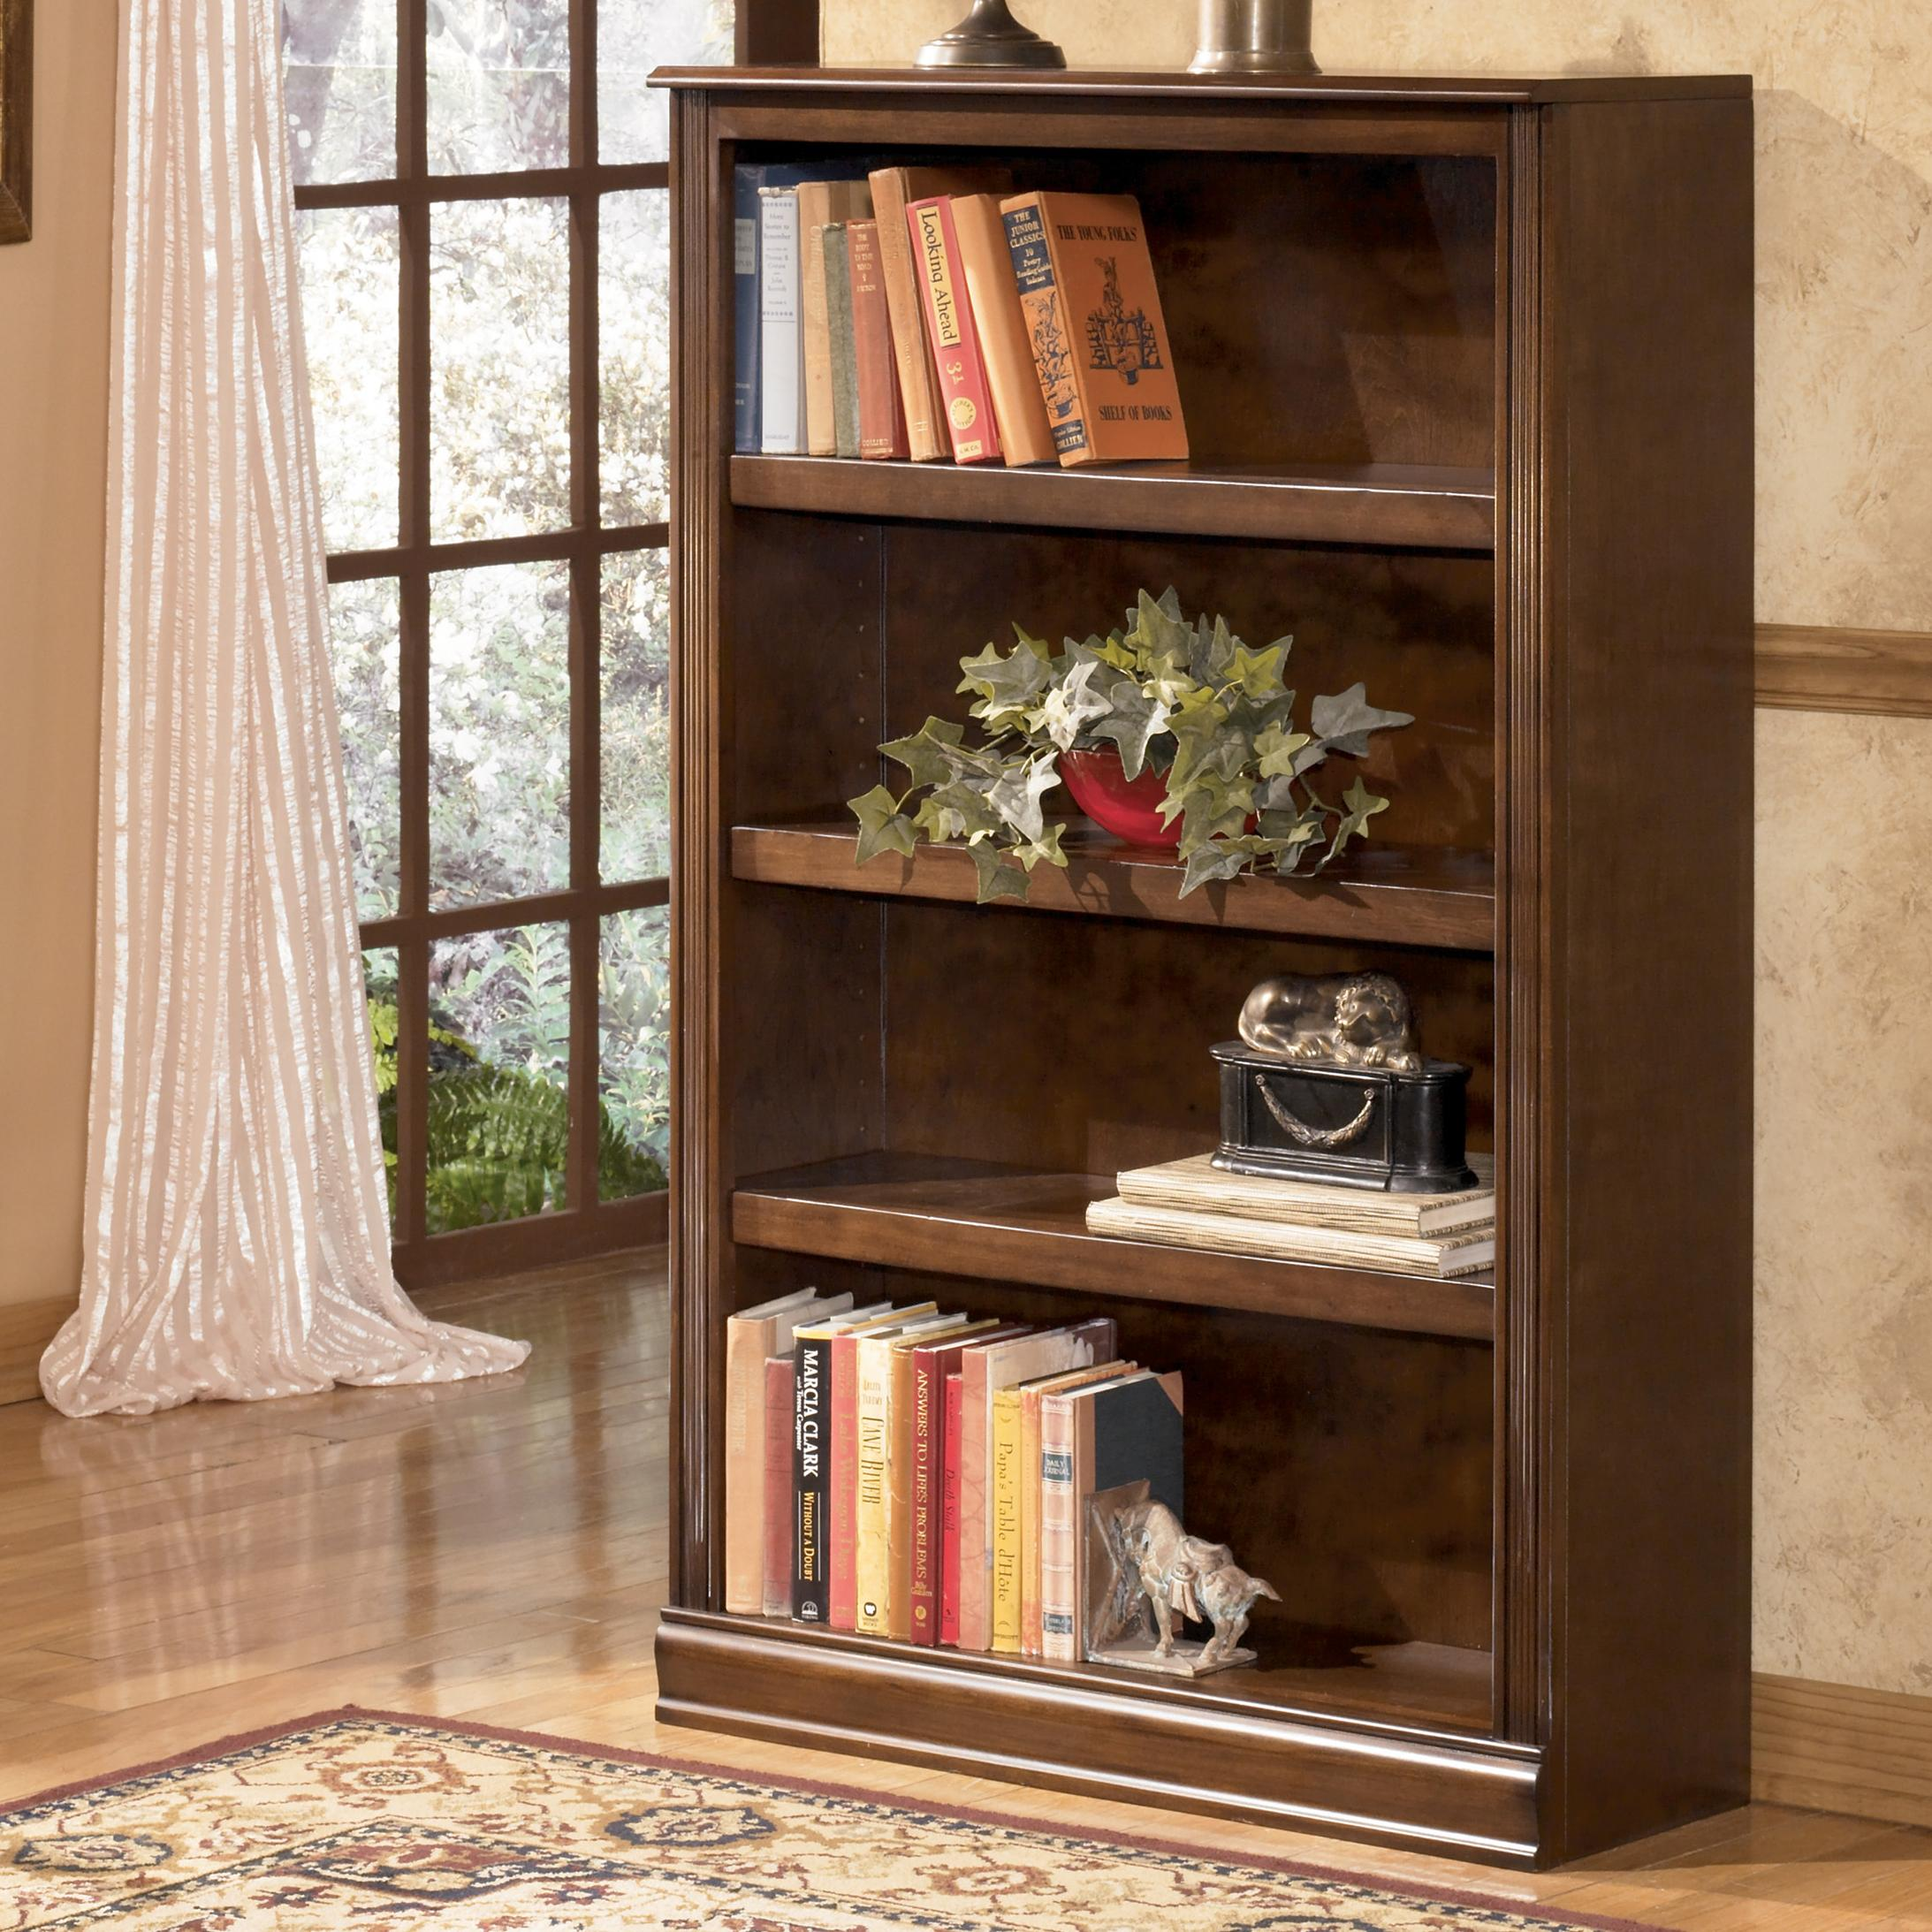 Hamlyn Medium Bookcase by Signature Design by Ashley at Beck's Furniture